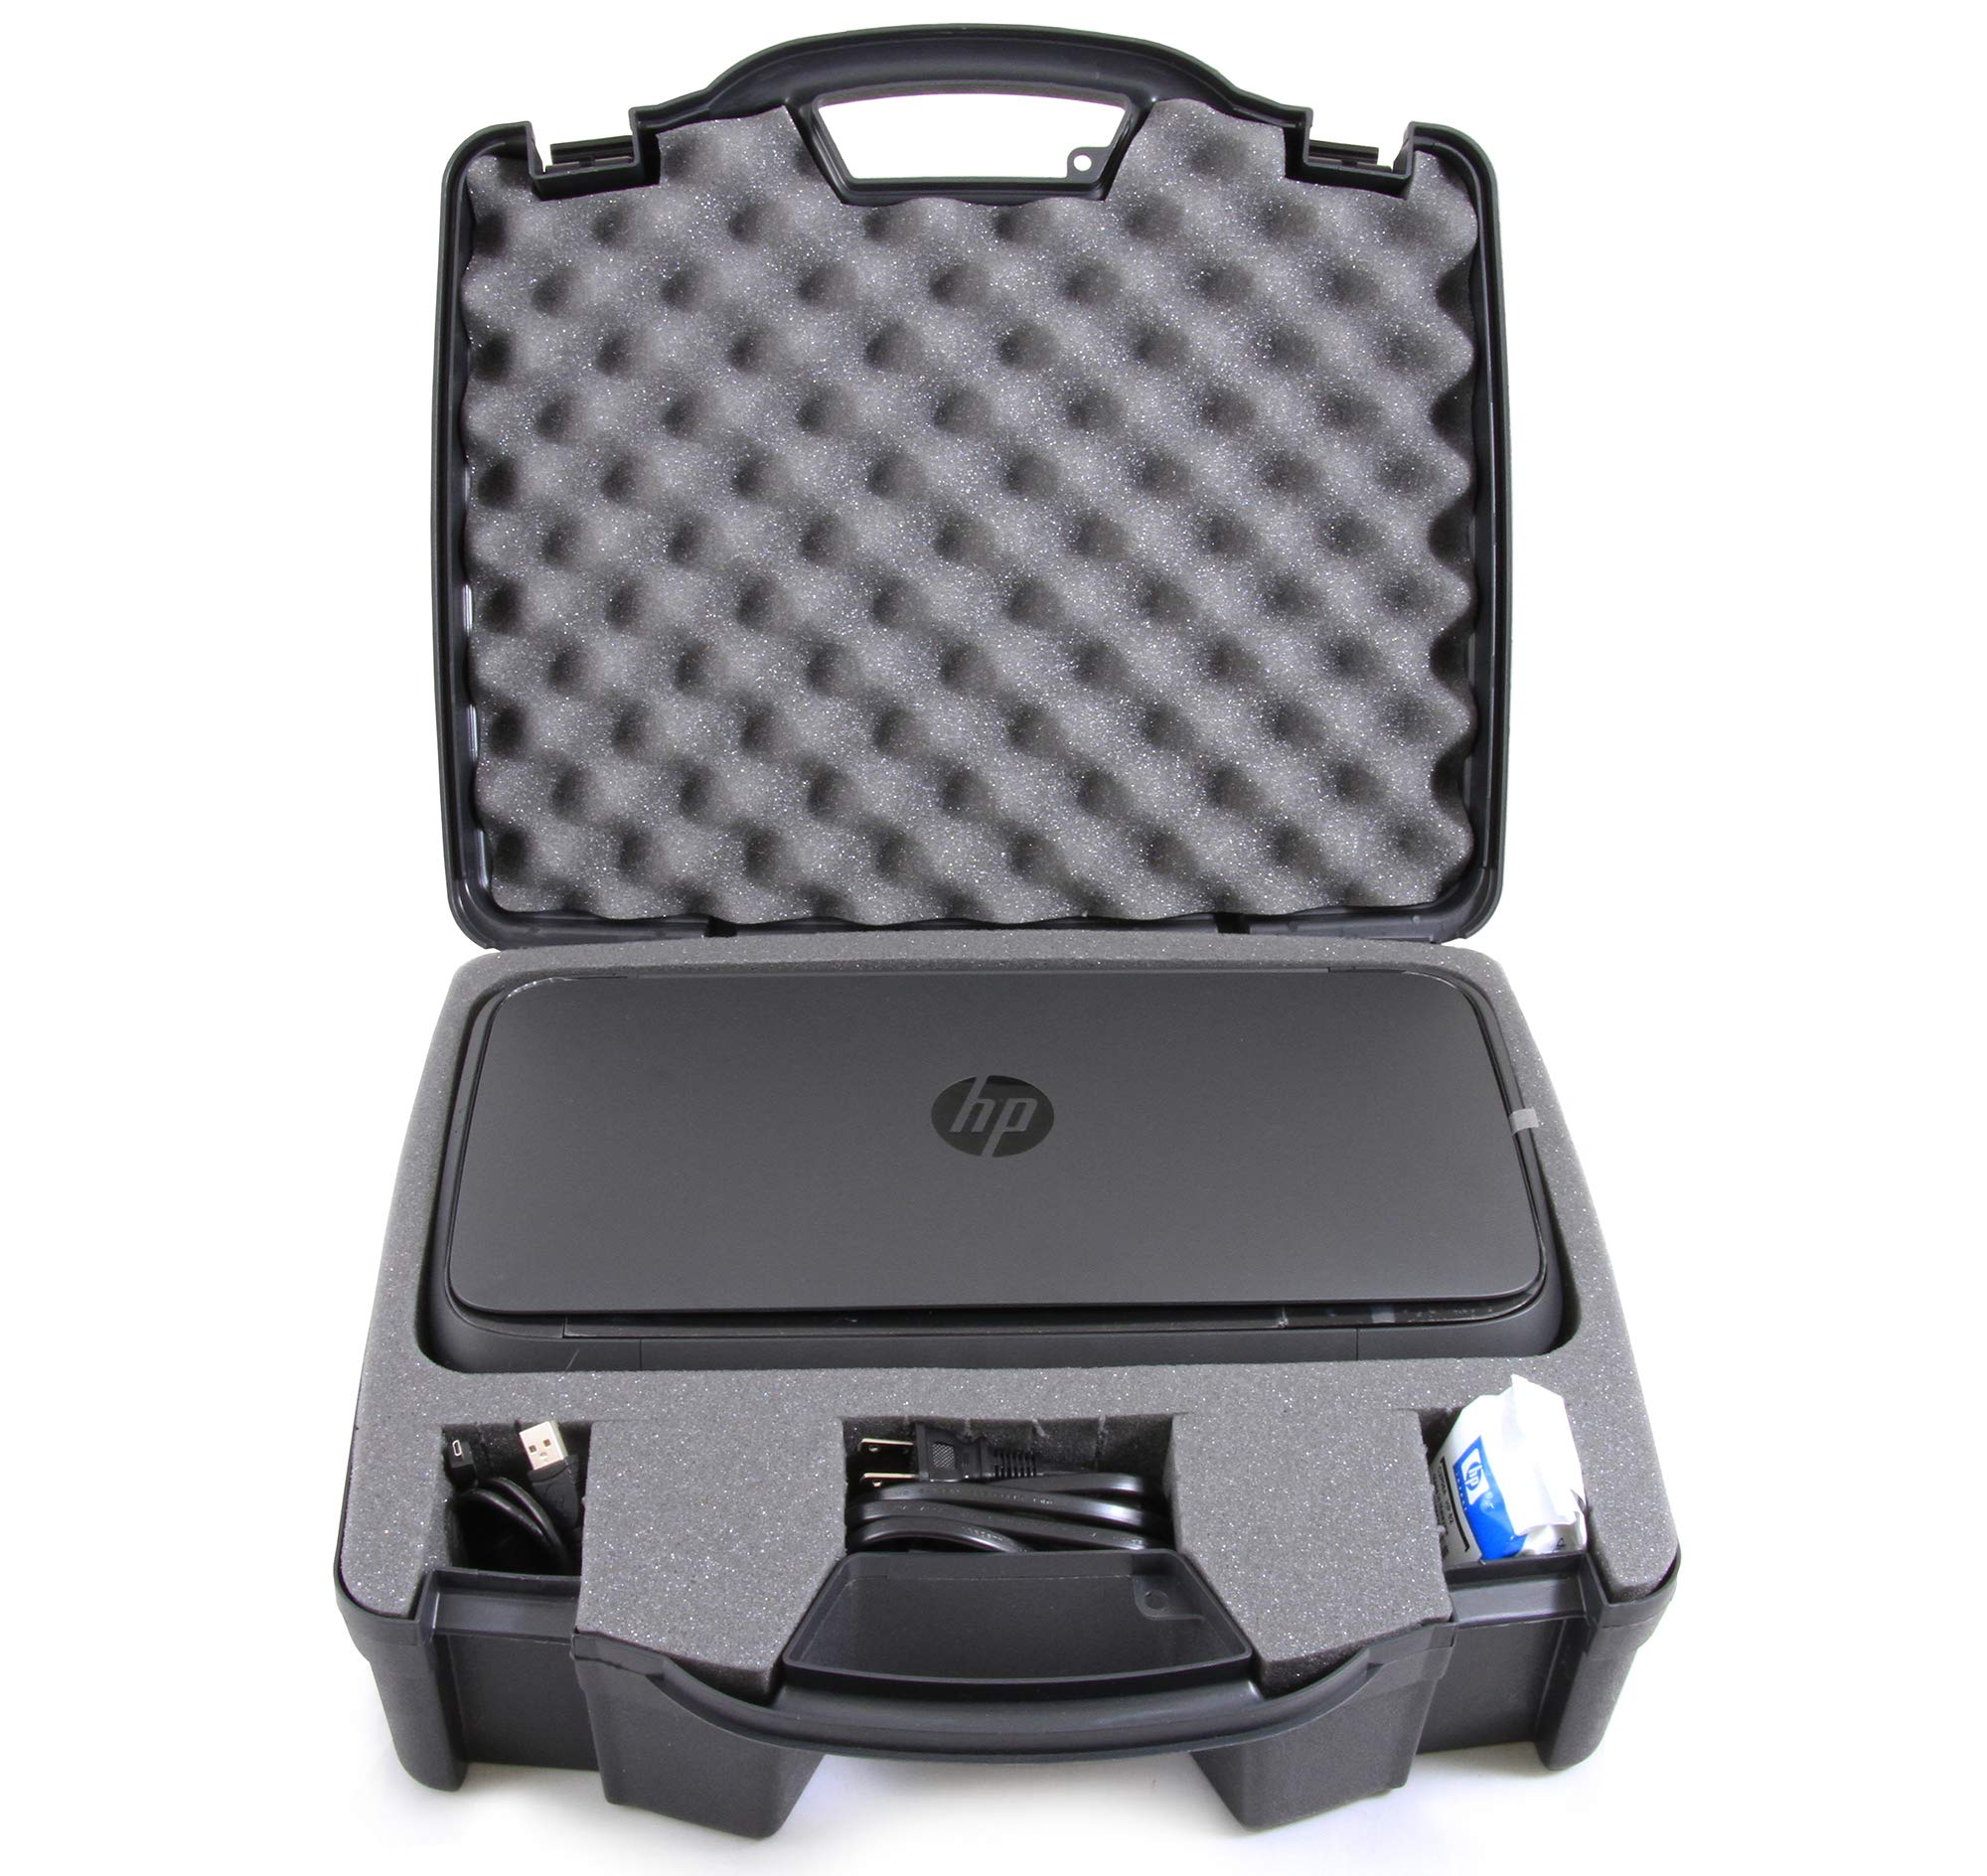 Casematix Portable Printer Carry Case for HP Officejet 250 Wireless Mobile Printer, Ink Cartridges and Power Cable (HP 250)